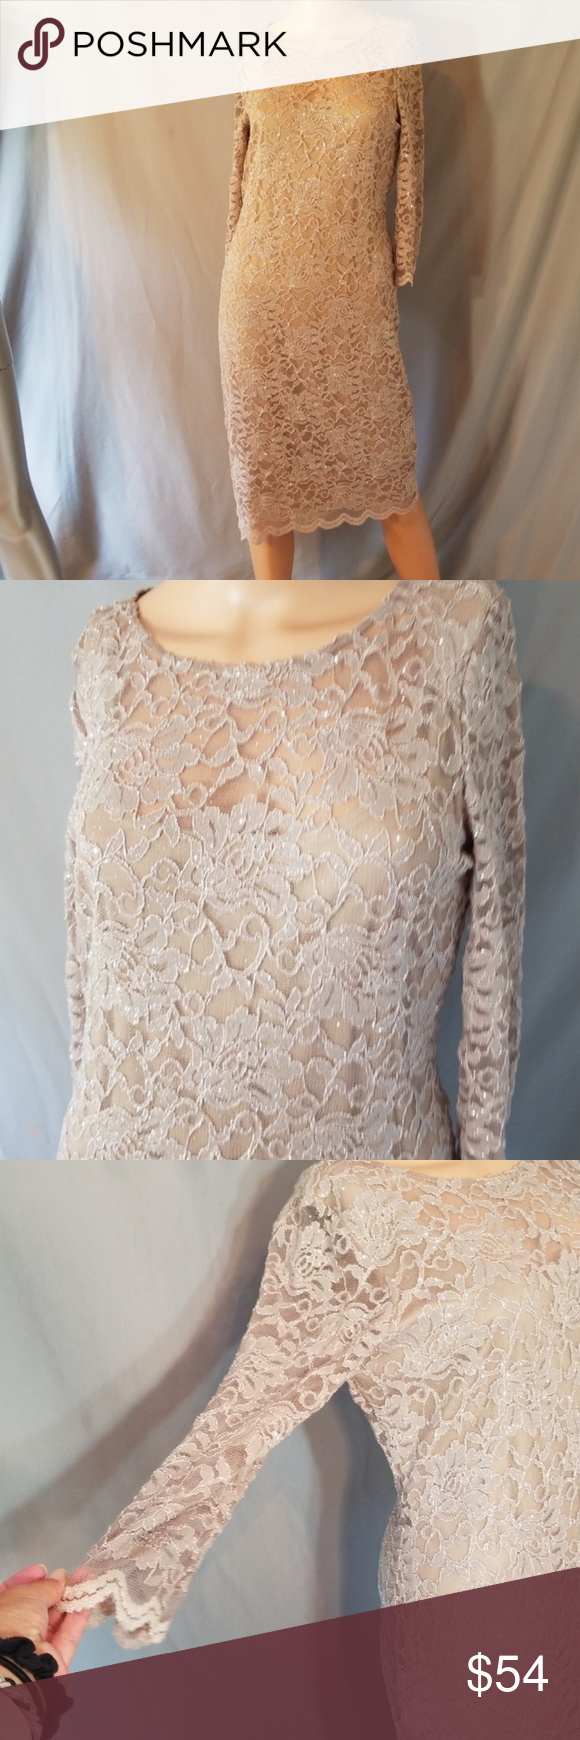 a894a0a755f 🌺NWT ONYX NITE GLITTER SHEERISH LACE DRESS Exquisite dress for so many  occasions. Body is lined but shows thru above chest. Sheer arms…